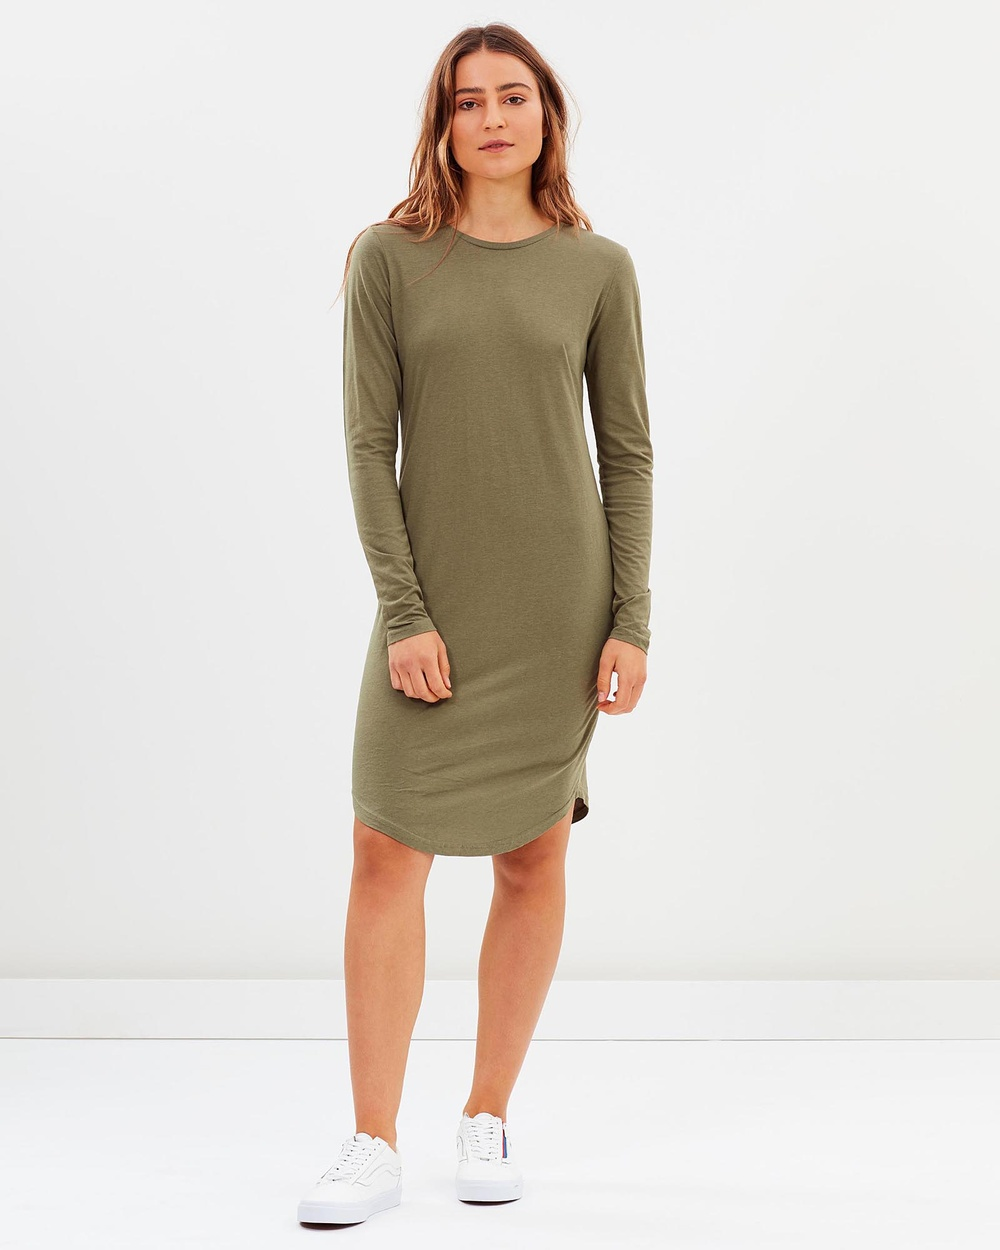 Tee Ink Asymmetrical Hem LS Tee Dress Dresses Khaki Asymmetrical Hem LS Tee Dress